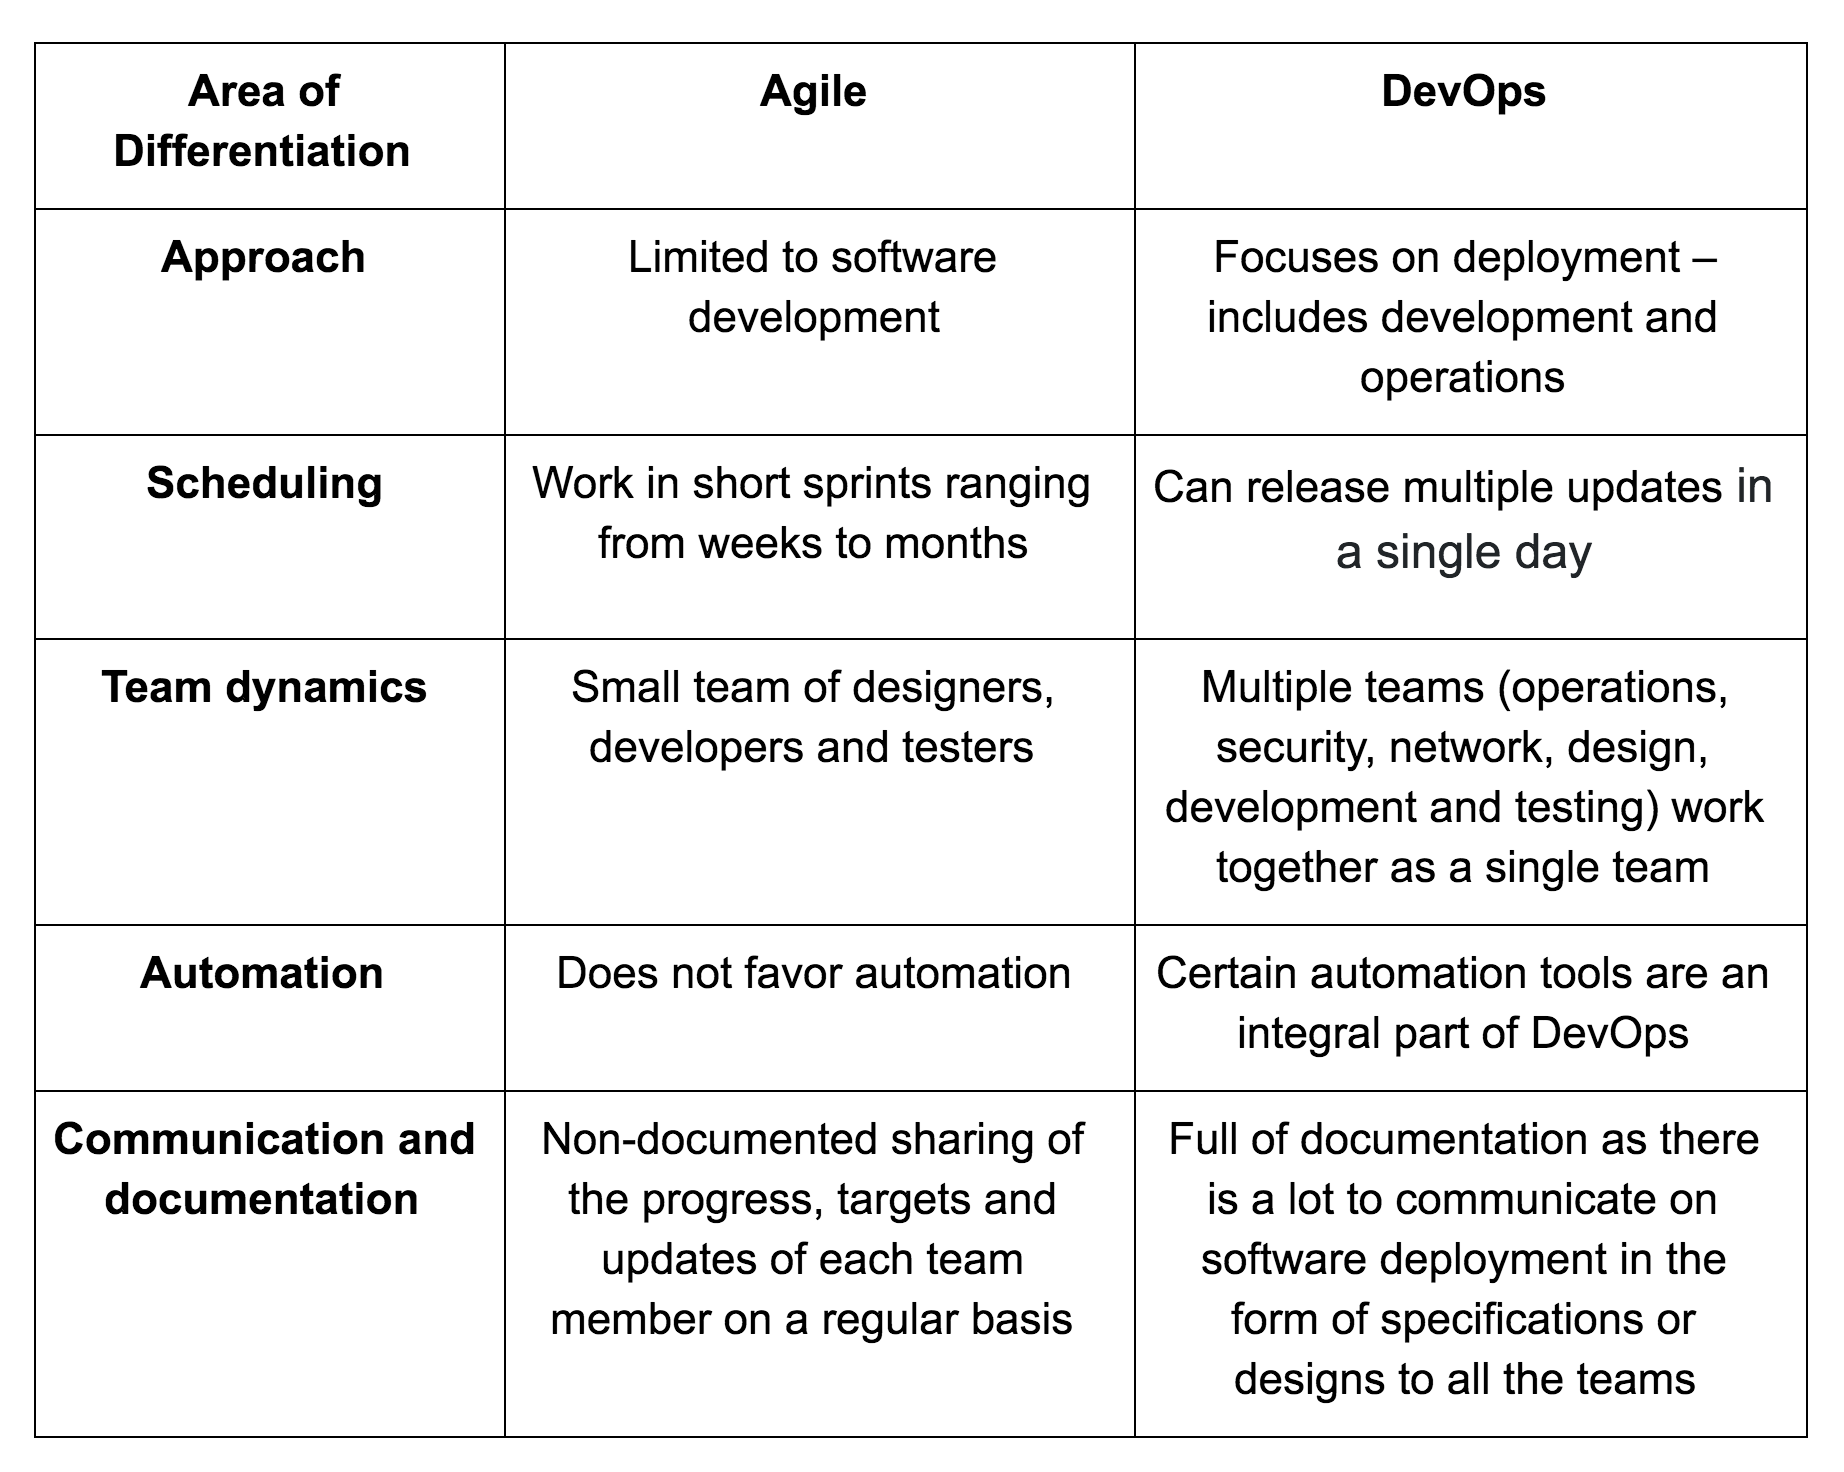 Agile vs DevOps process summary chart